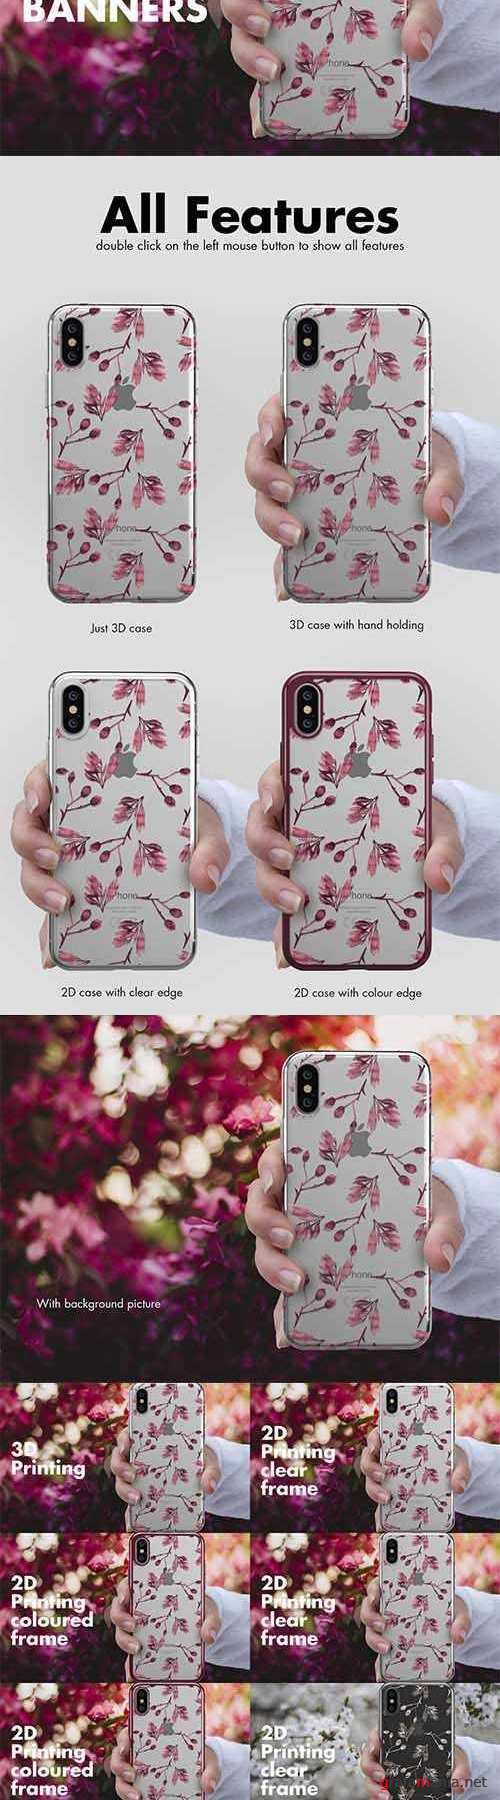 iPhone X Case Banners Mock-up vs1 2602462